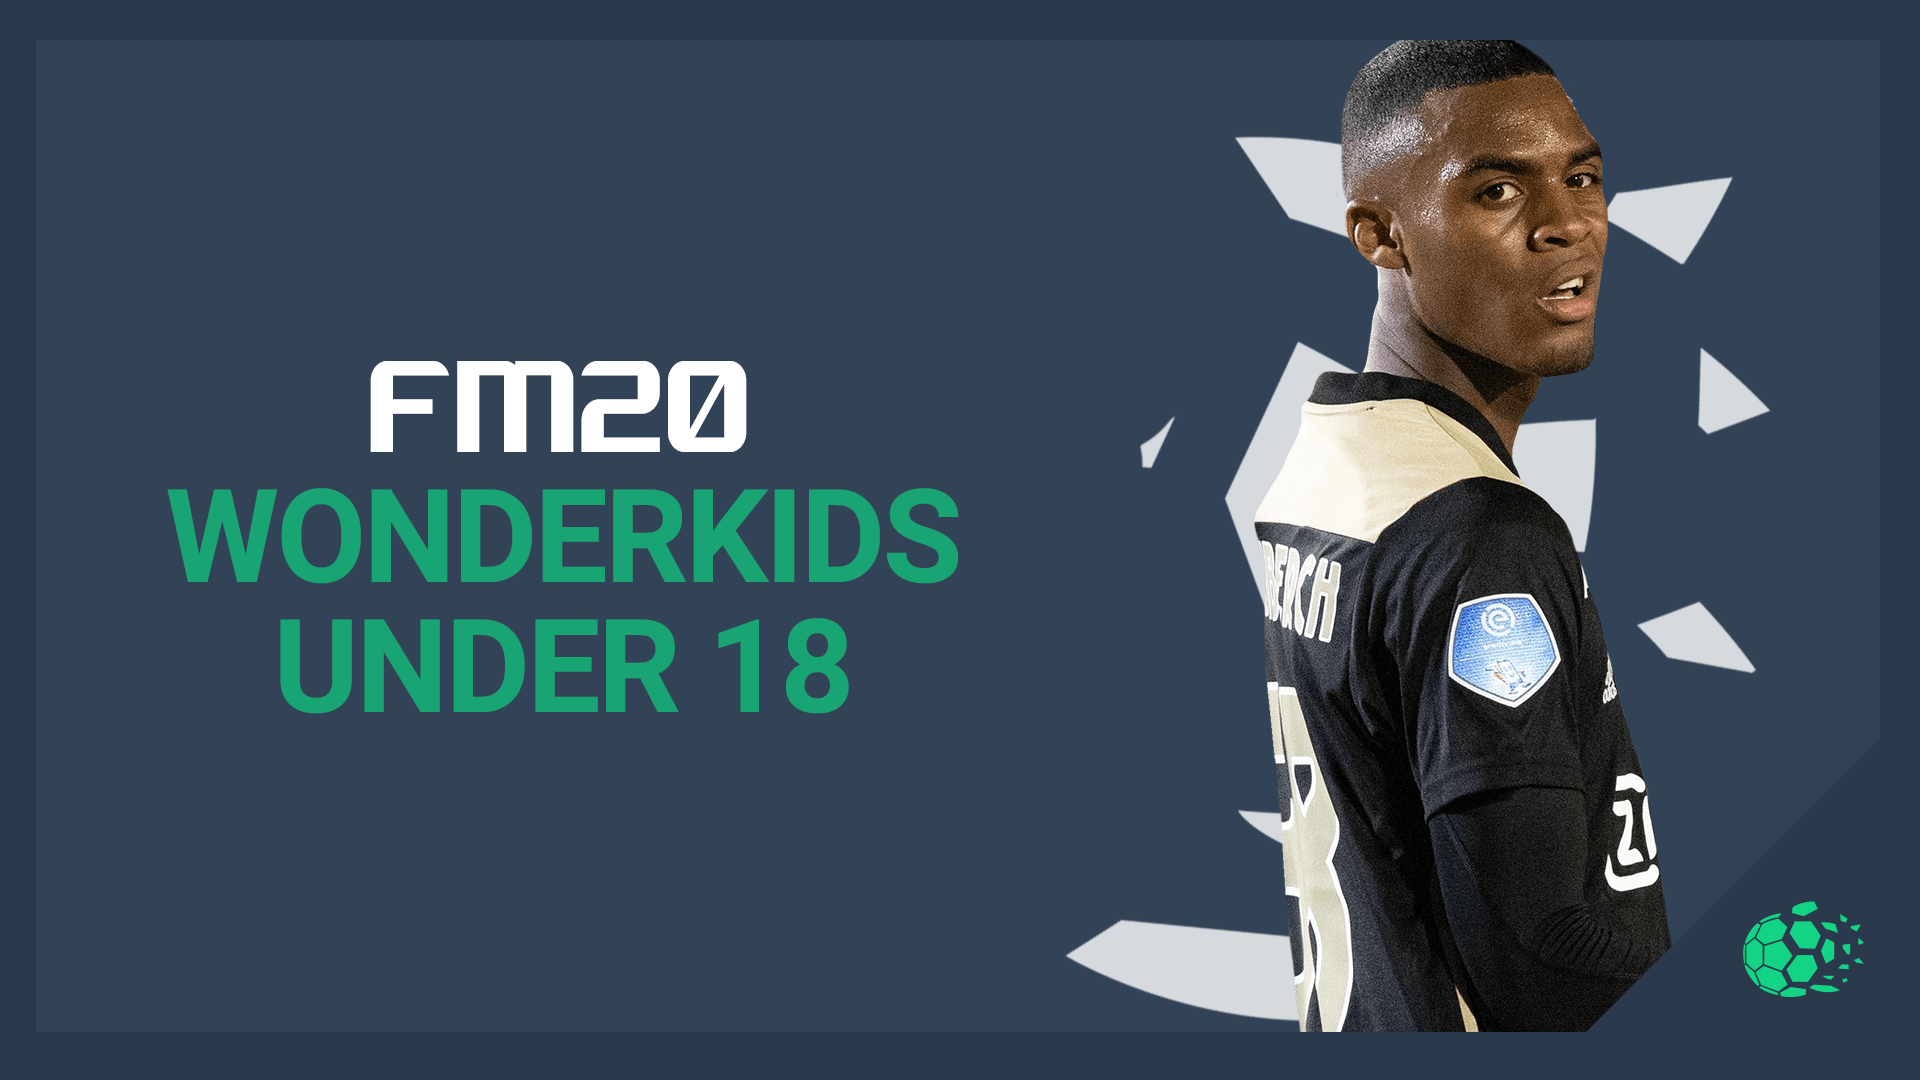 """FM20 Wonderkids (Under 18)"" feature image"